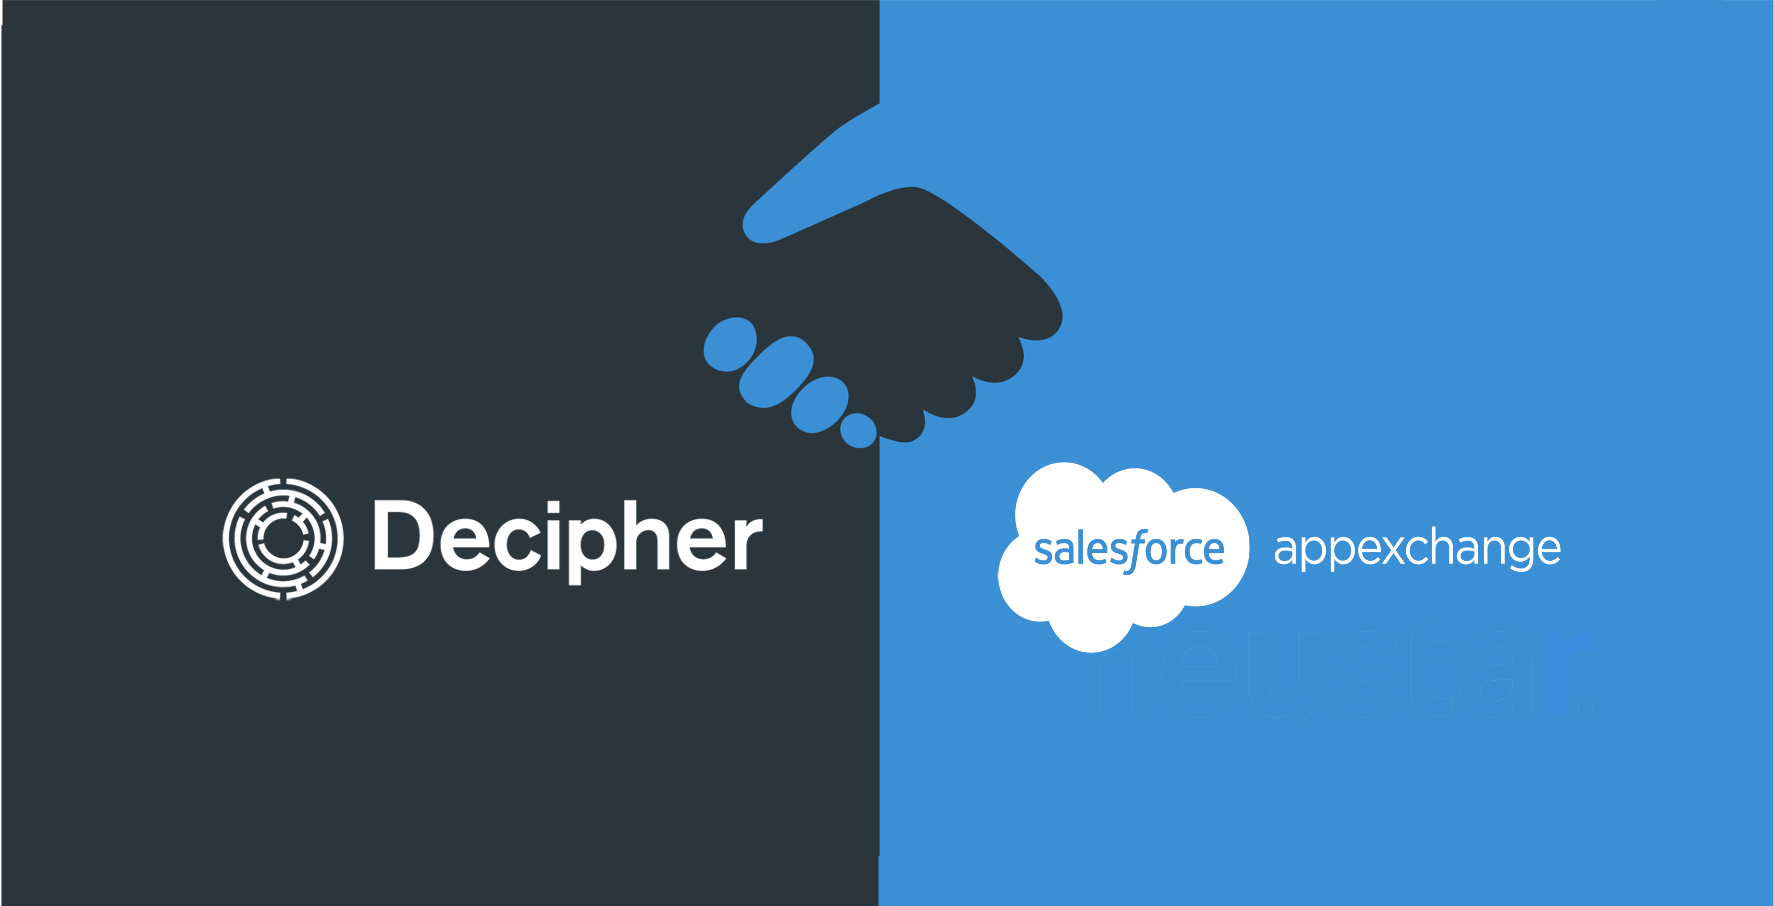 Decipher Partners with Salesforce and Launches New App in AppExchange